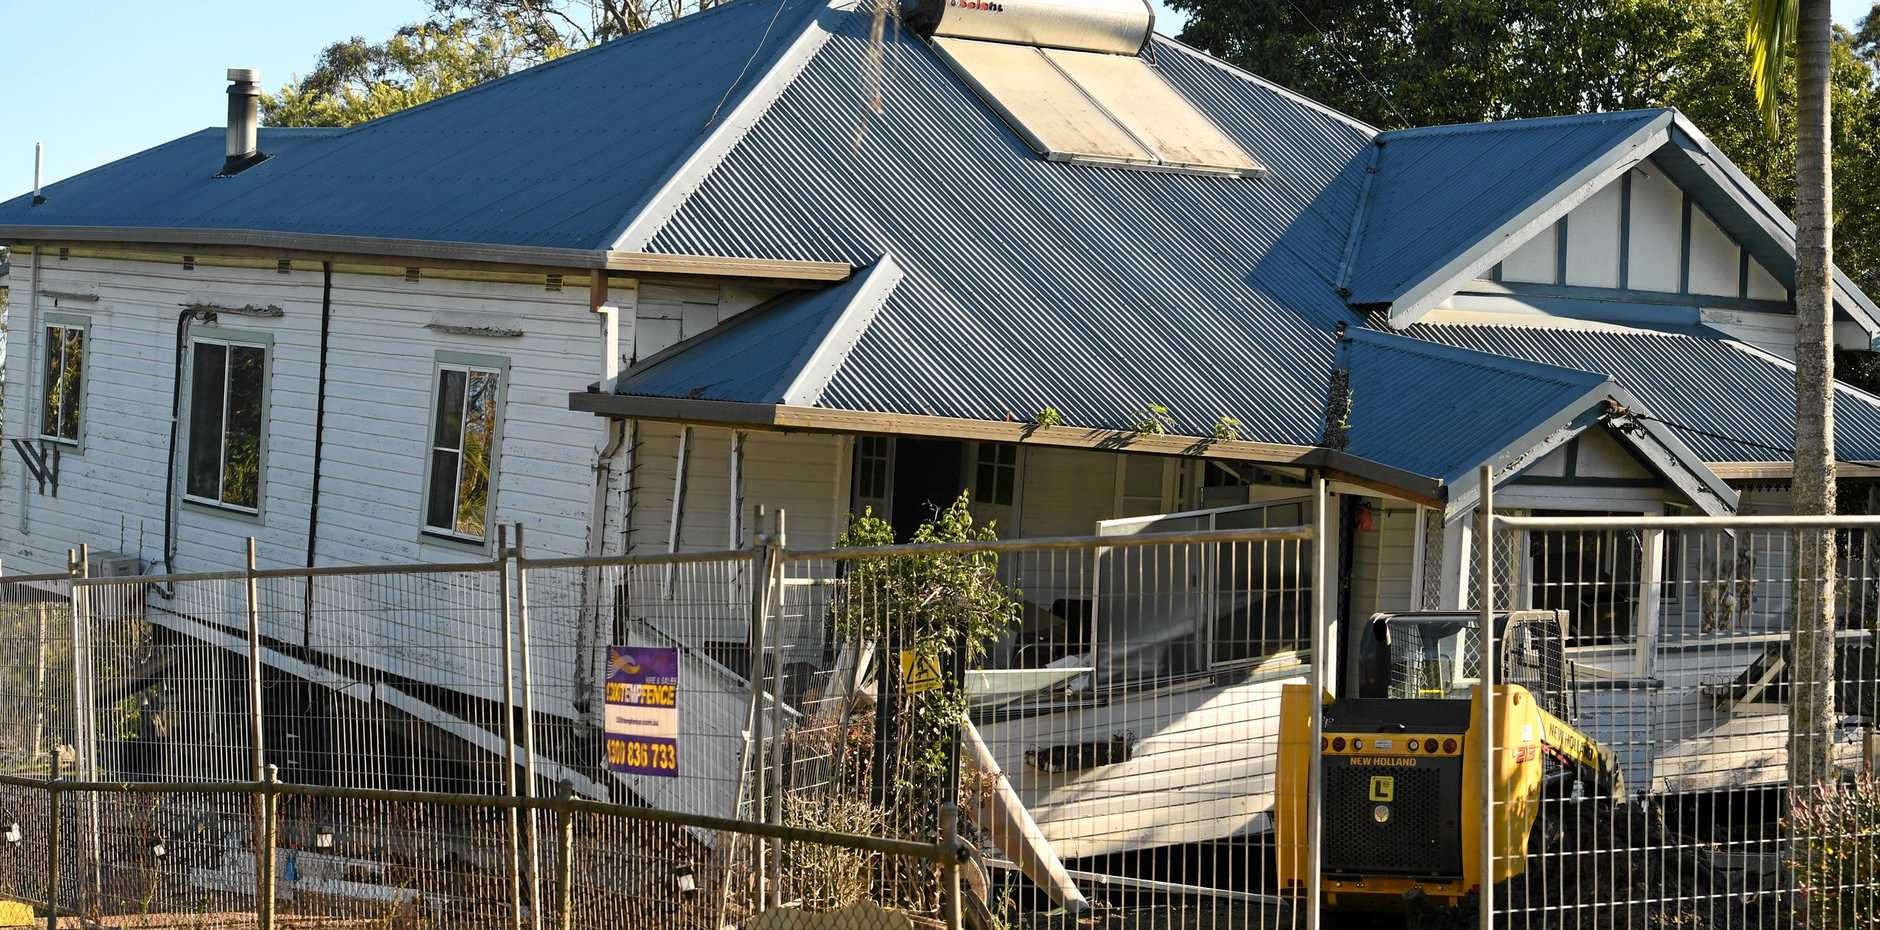 A house in South Lismore appears to have lost structural support and fallen.